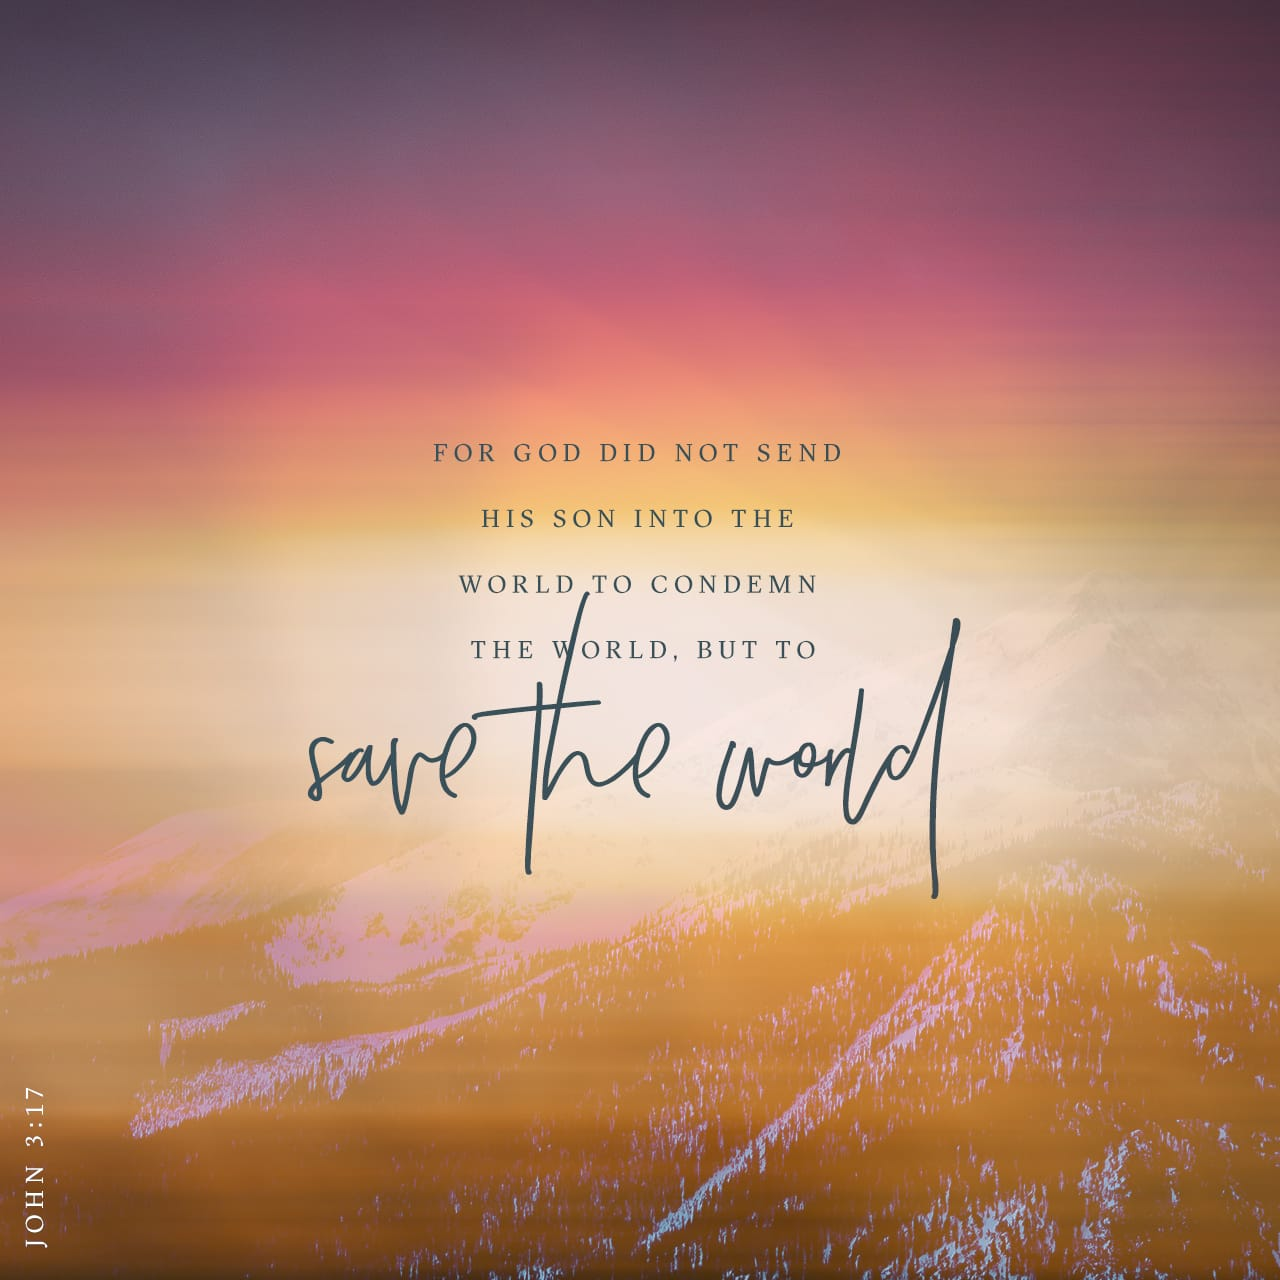 John 3:17 For God did not send his Son into the world to condemn the world, but to save the world through him. | New International Version (NIV)